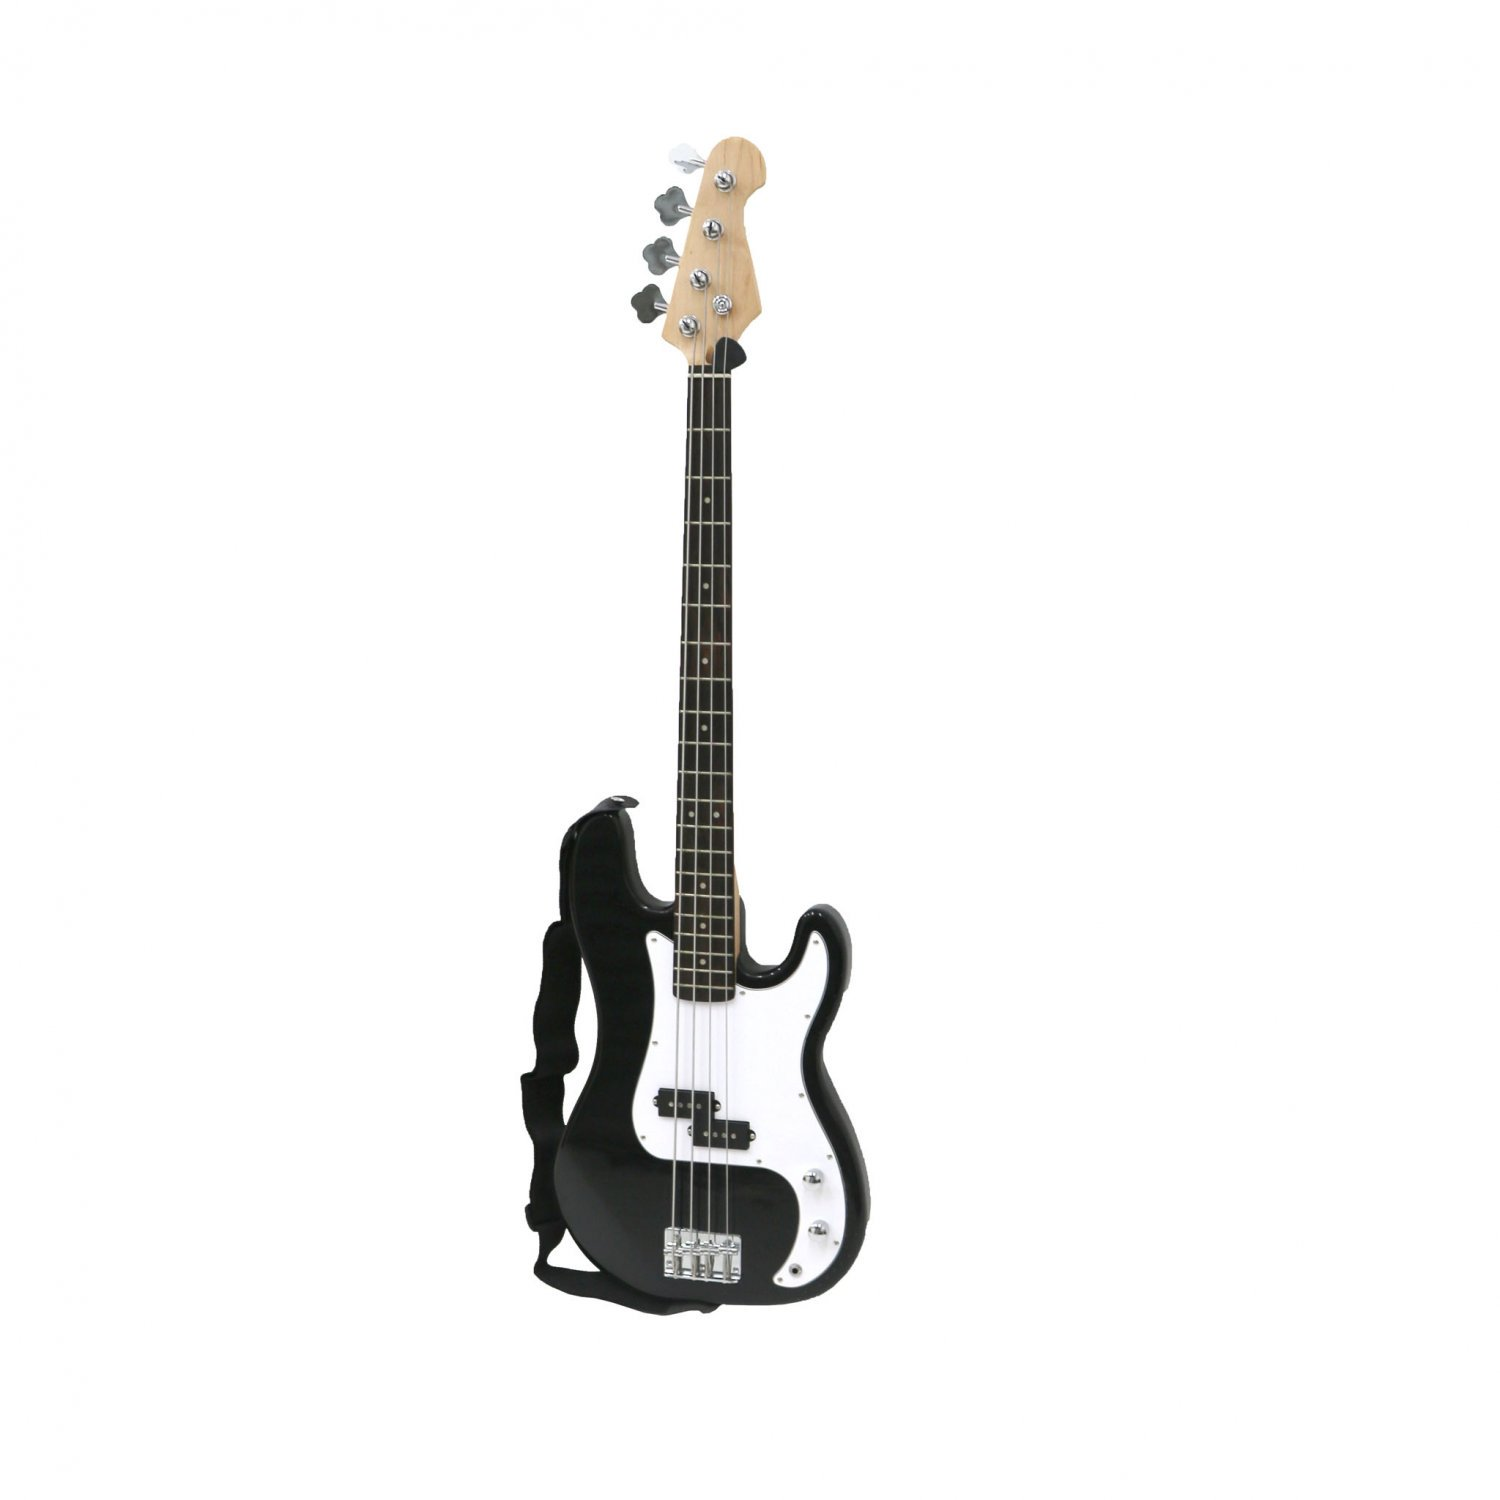 PB Precision Style Black 4 String Electric Bass Guitar